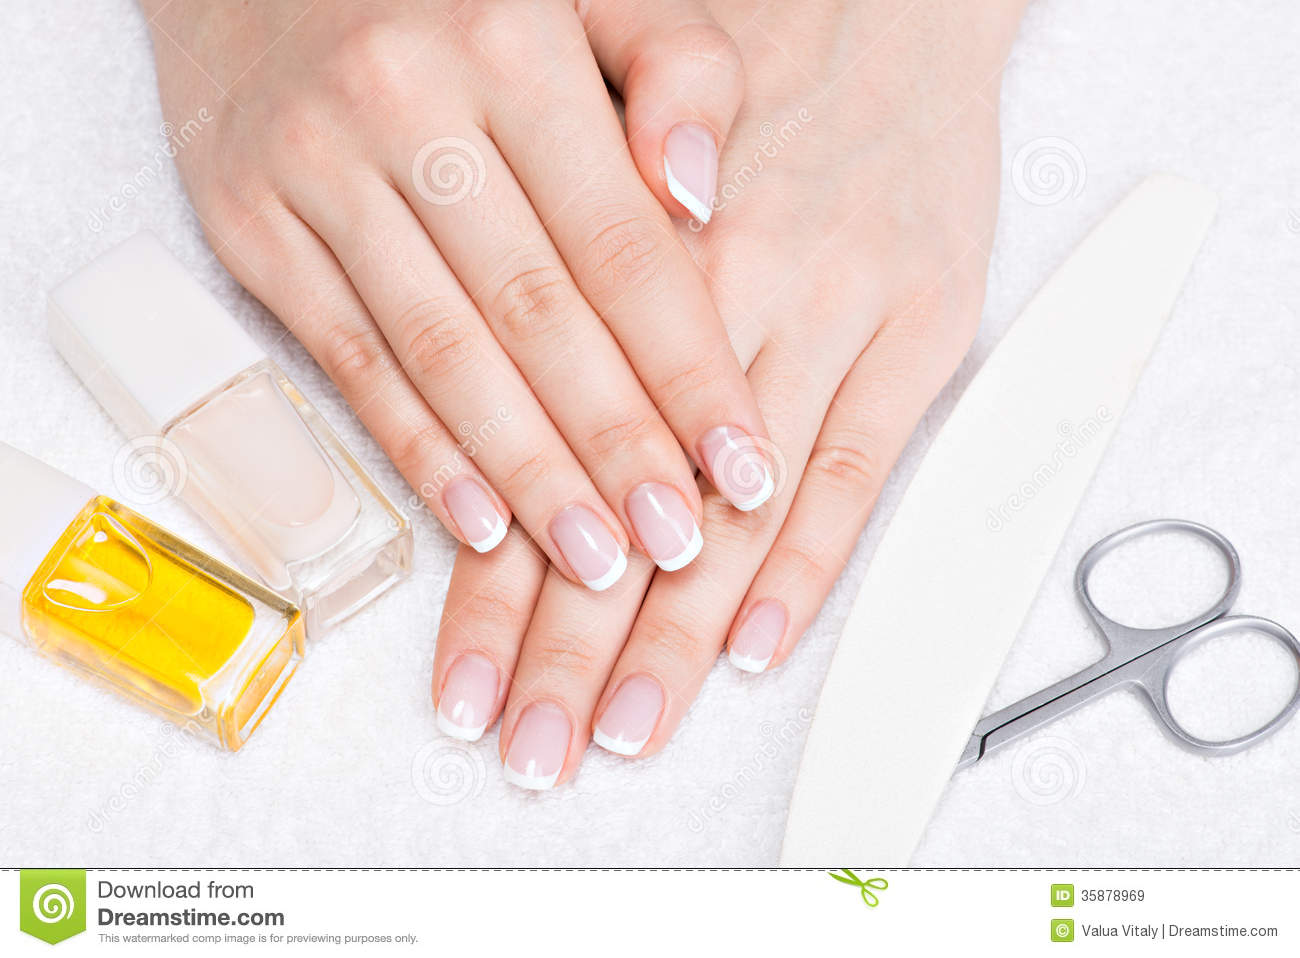 Woman In A Nail Salon Receiving Manicure Stock Image - Image of ...